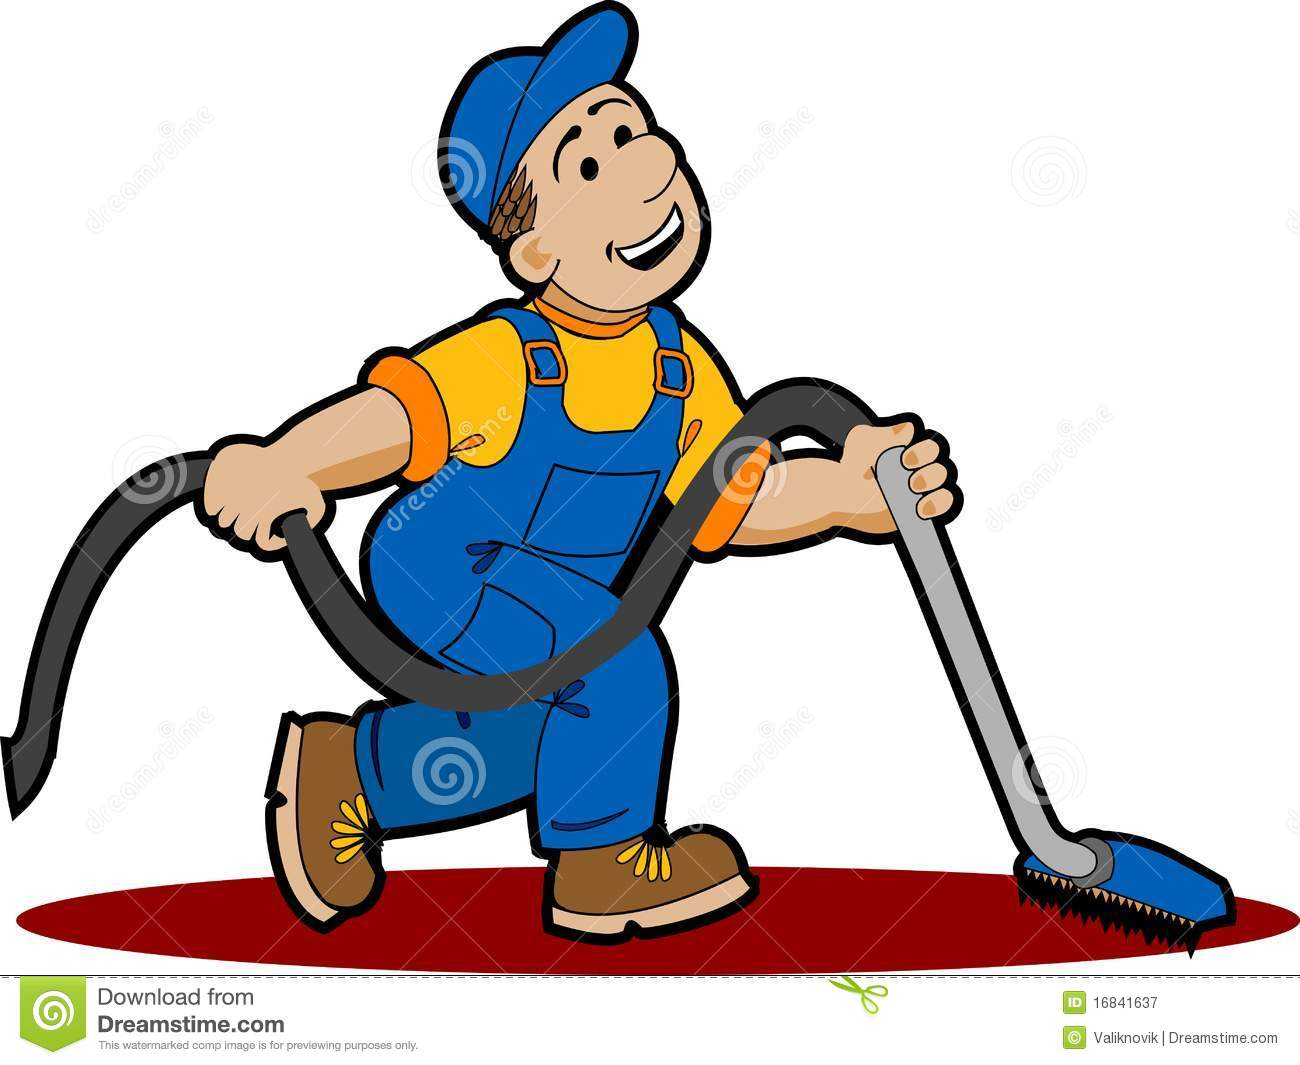 Year Old Carpet Stains GONE | CFG House & Home |Carpet Clean Cartoon